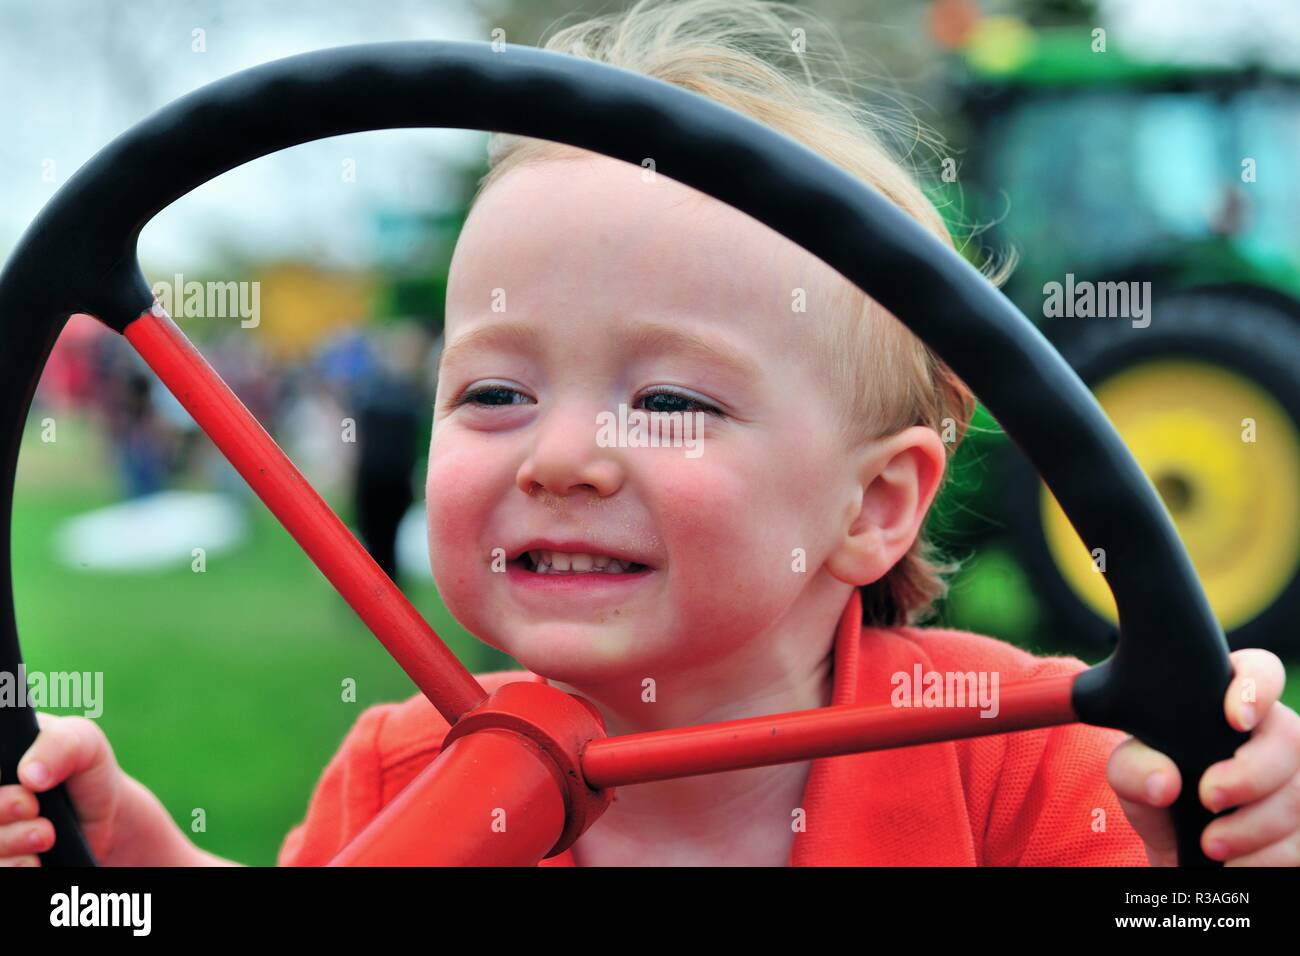 St. Charles, Illinois, USA. Little boy enjoying steering a stationary tractor at a touch-a-tractor event hosted by a farm bureau. - Stock Image